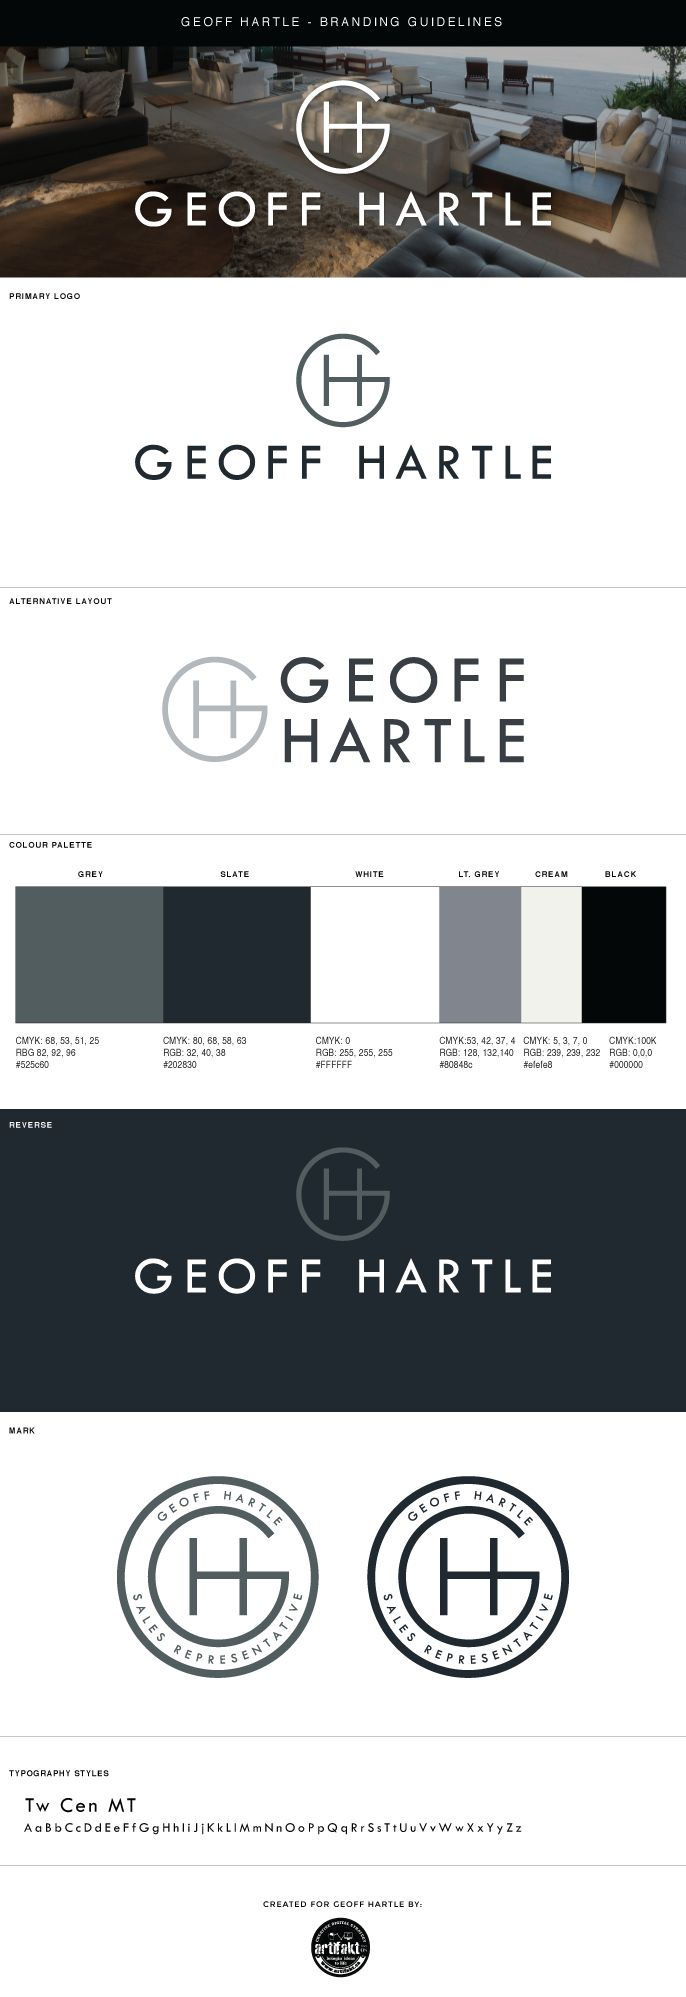 The completed branding guidelines we did for the Geoff Hartle Digital Strategy project.